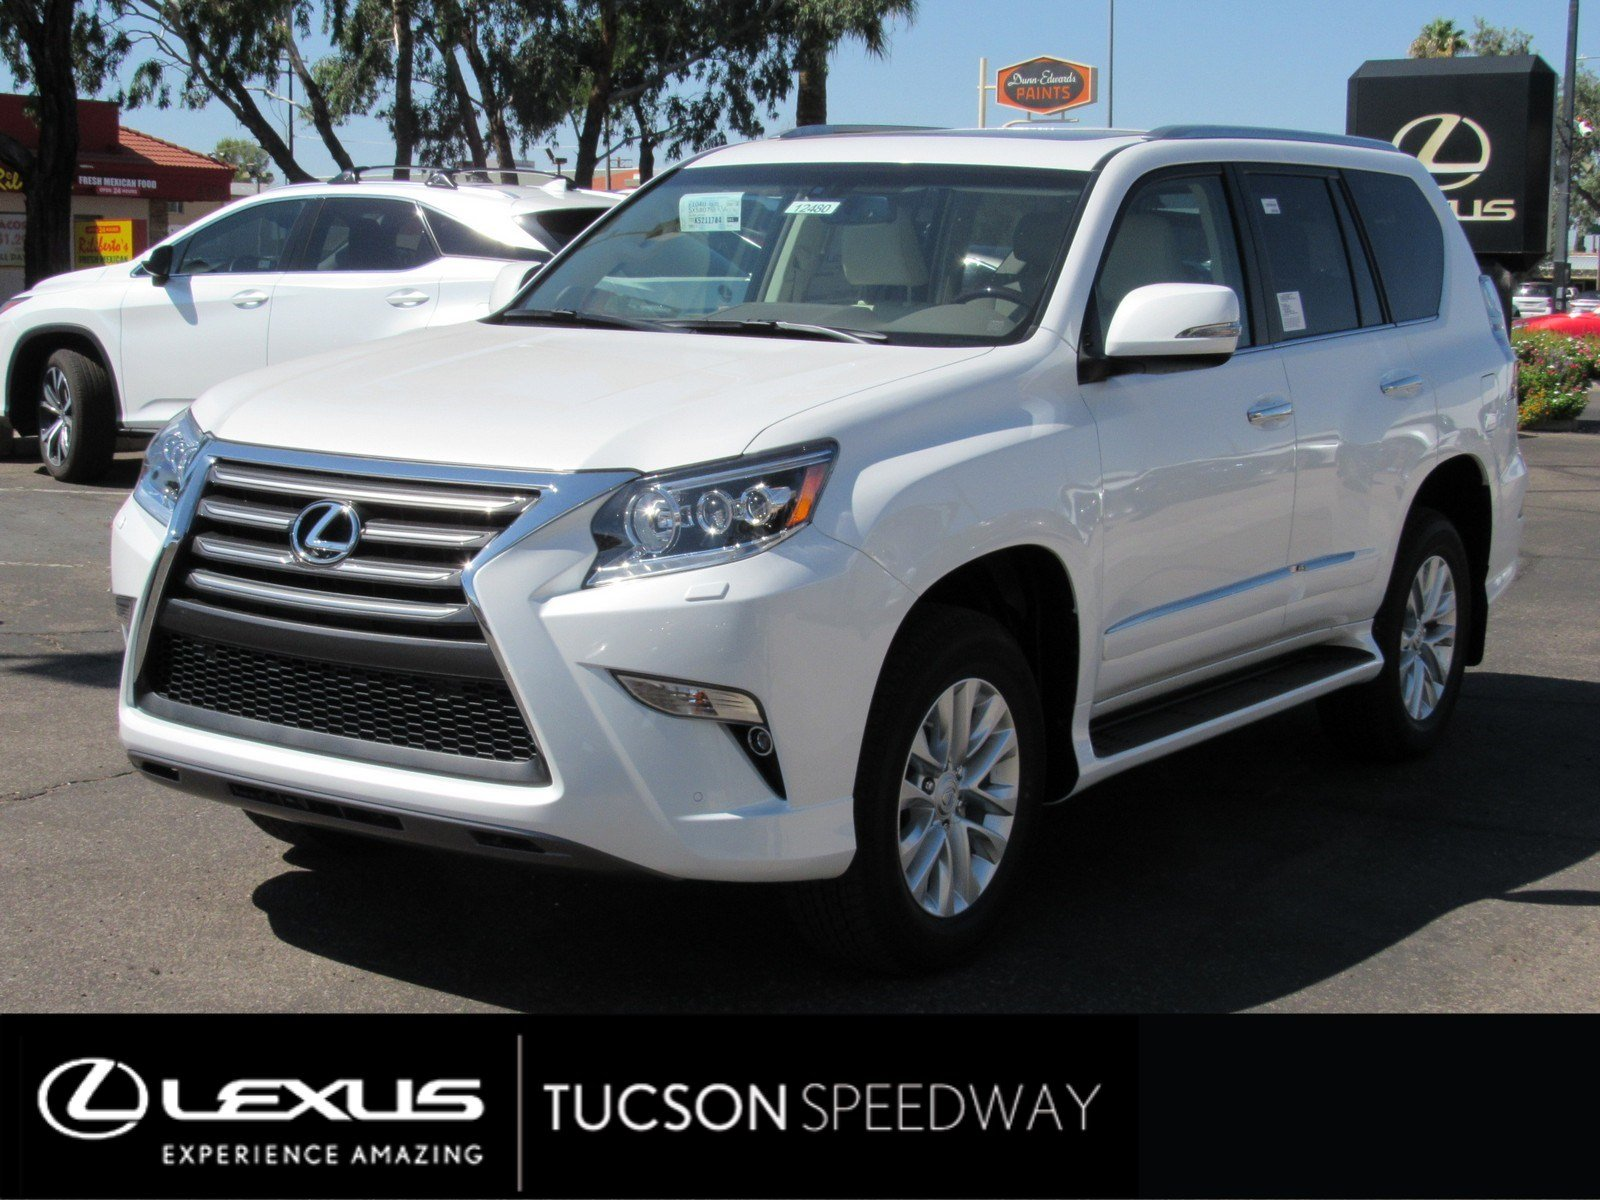 39 All New 2019 Lexus Gx First Drive